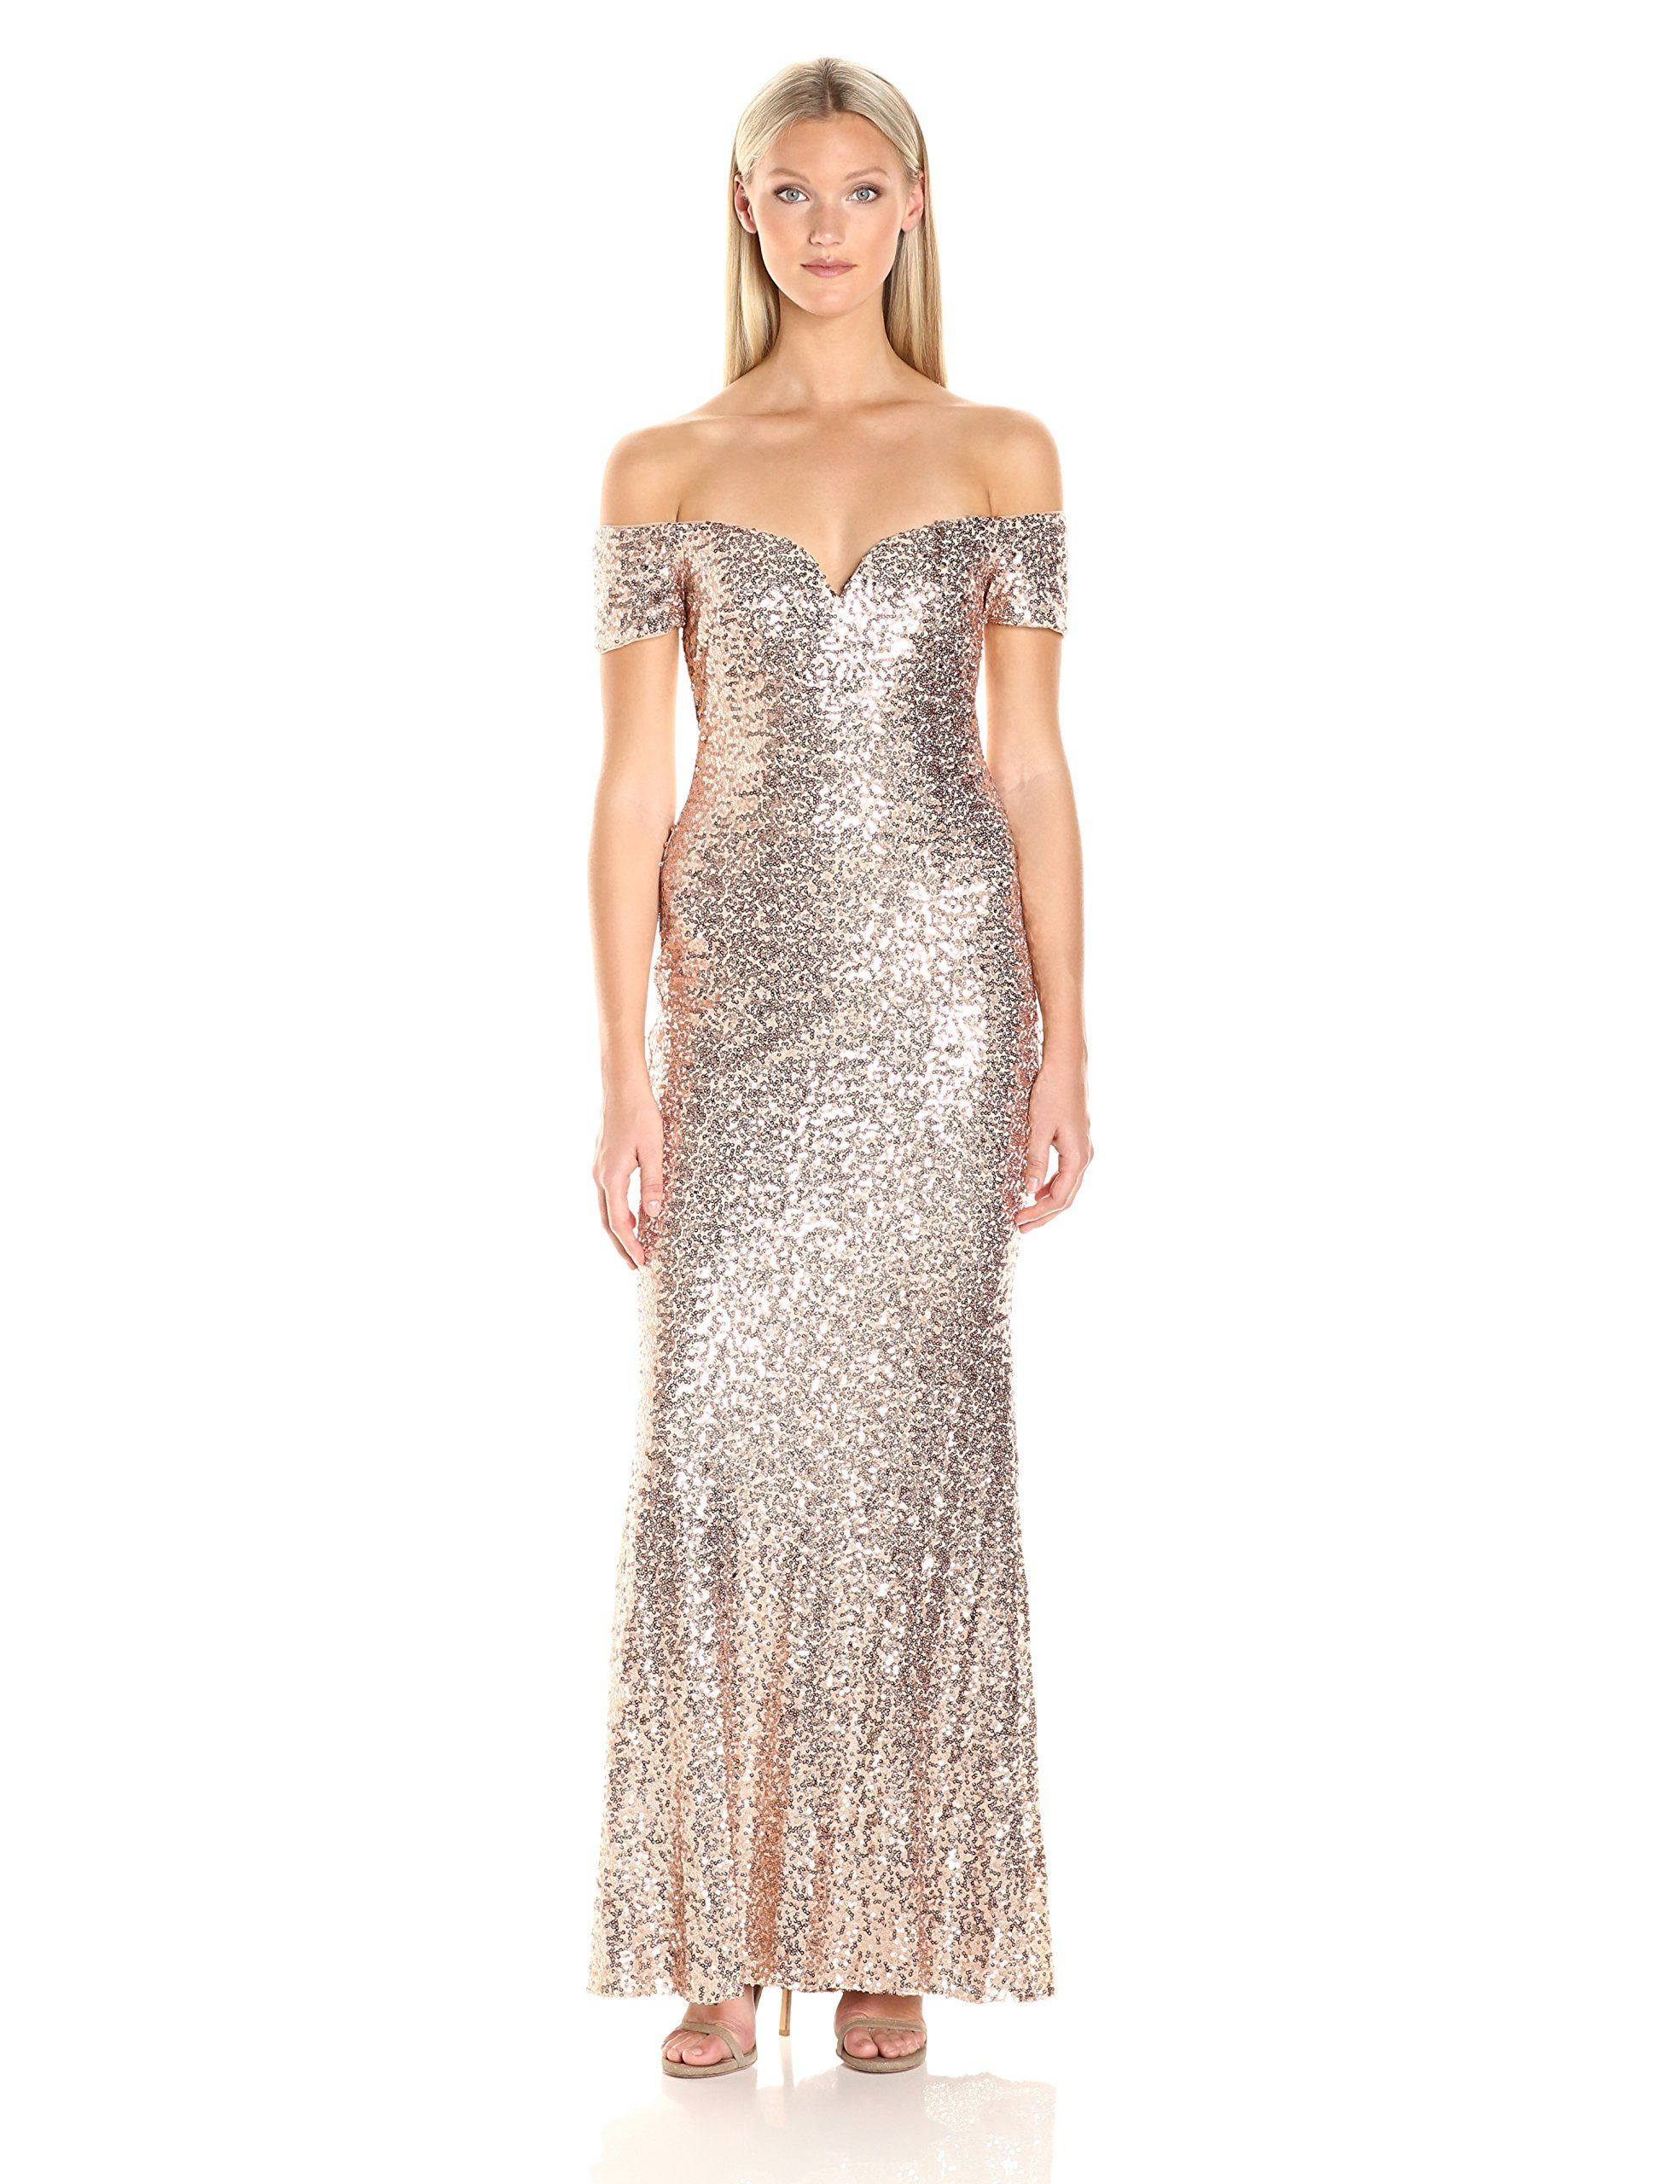 Badgley mischka womenus off the shoulder stretch sequin gown blush